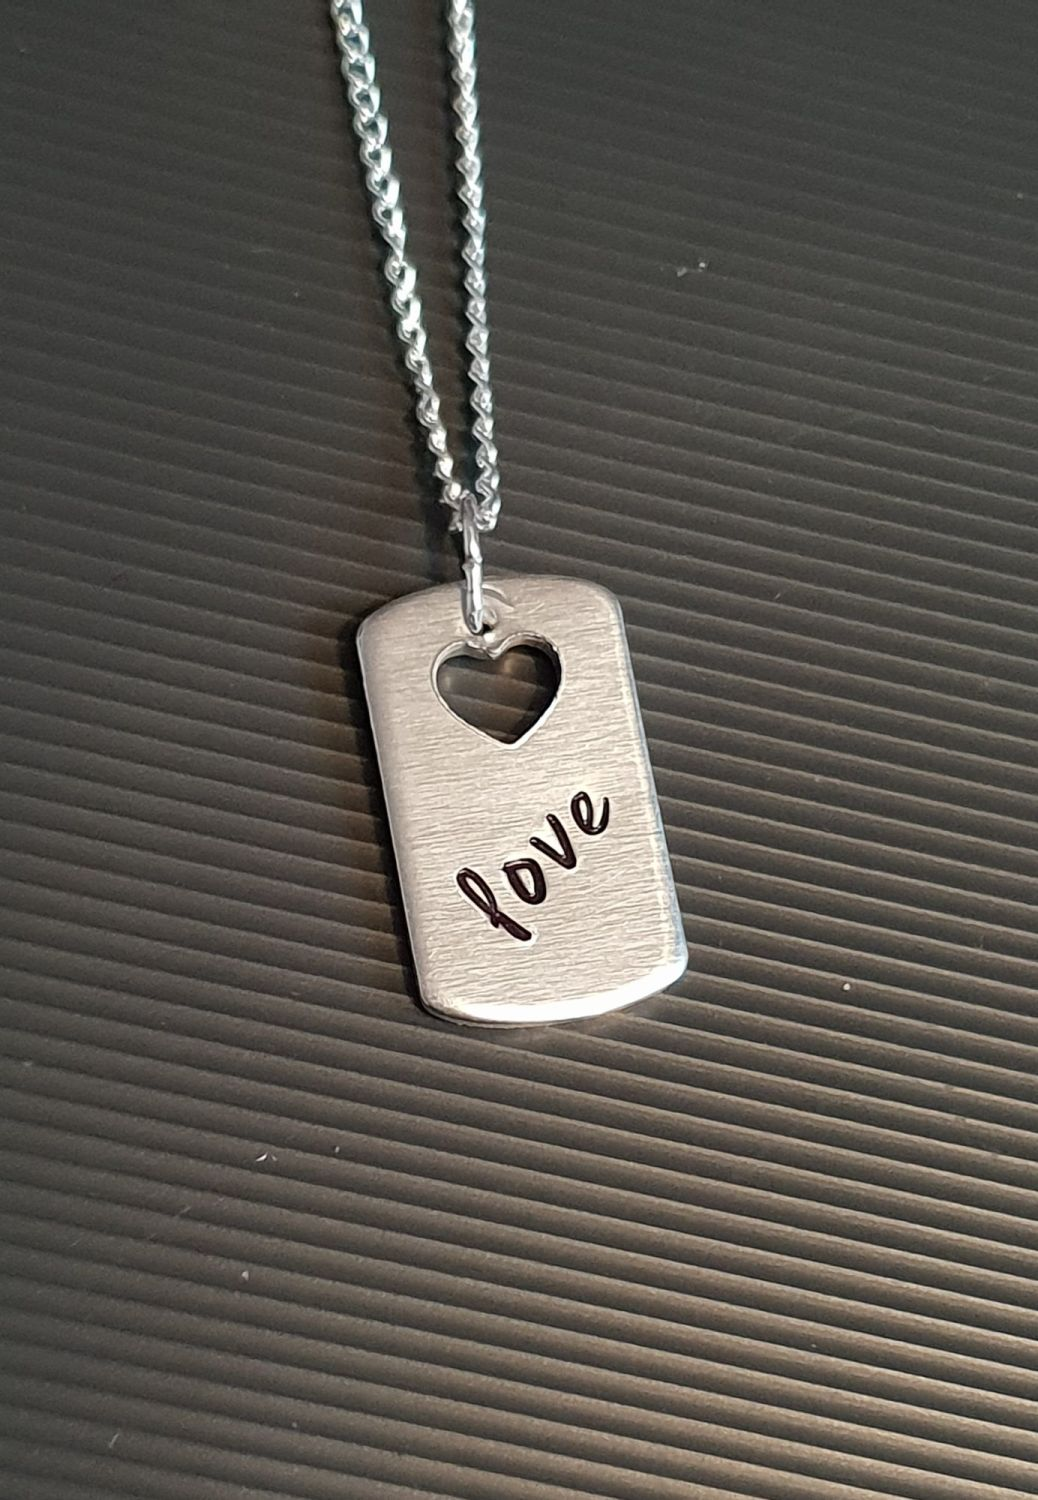 Love - Dogtag Necklace